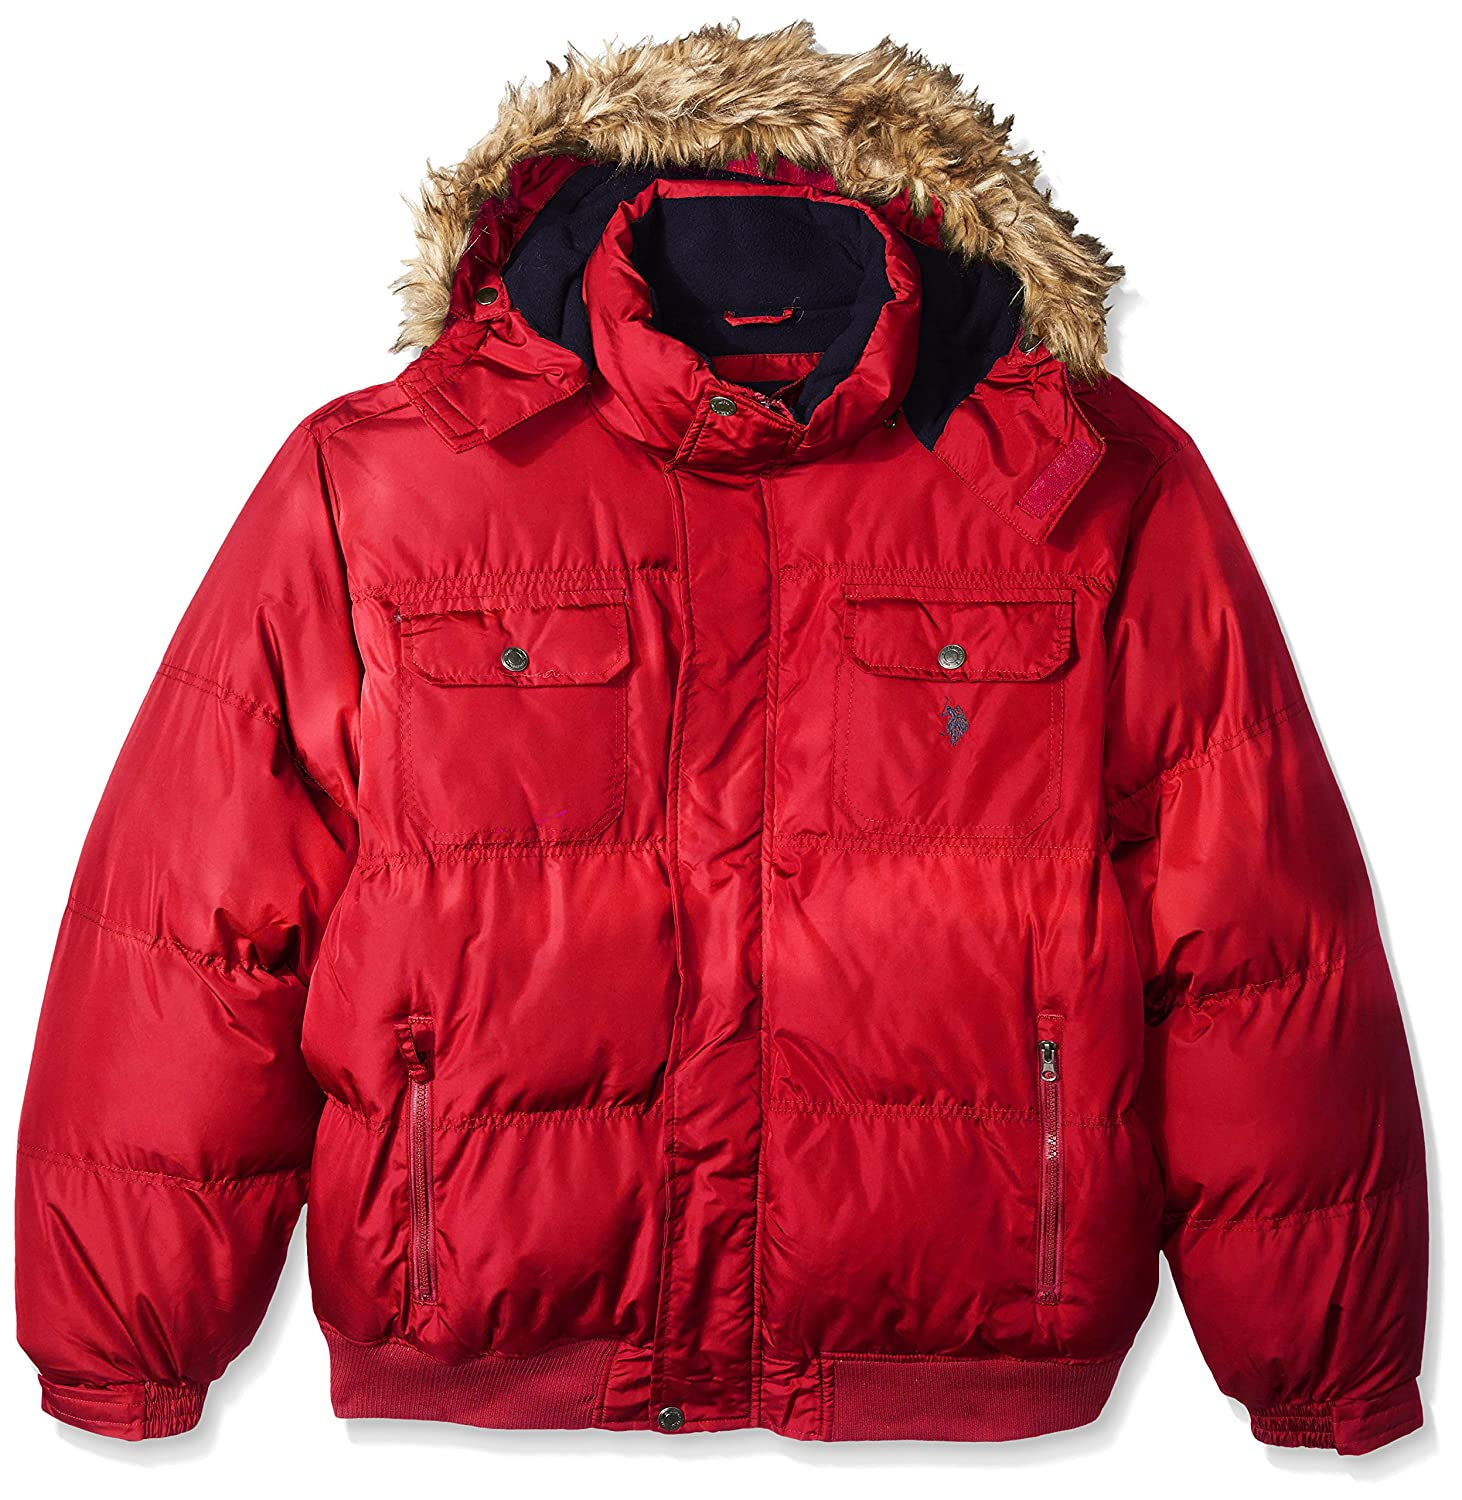 U.S. Polo Assn. OUTERWEAR メンズ B01LCMEBY0 4X Big|Chili Pepper Gjbk Chili Pepper Gjbk 4X Big